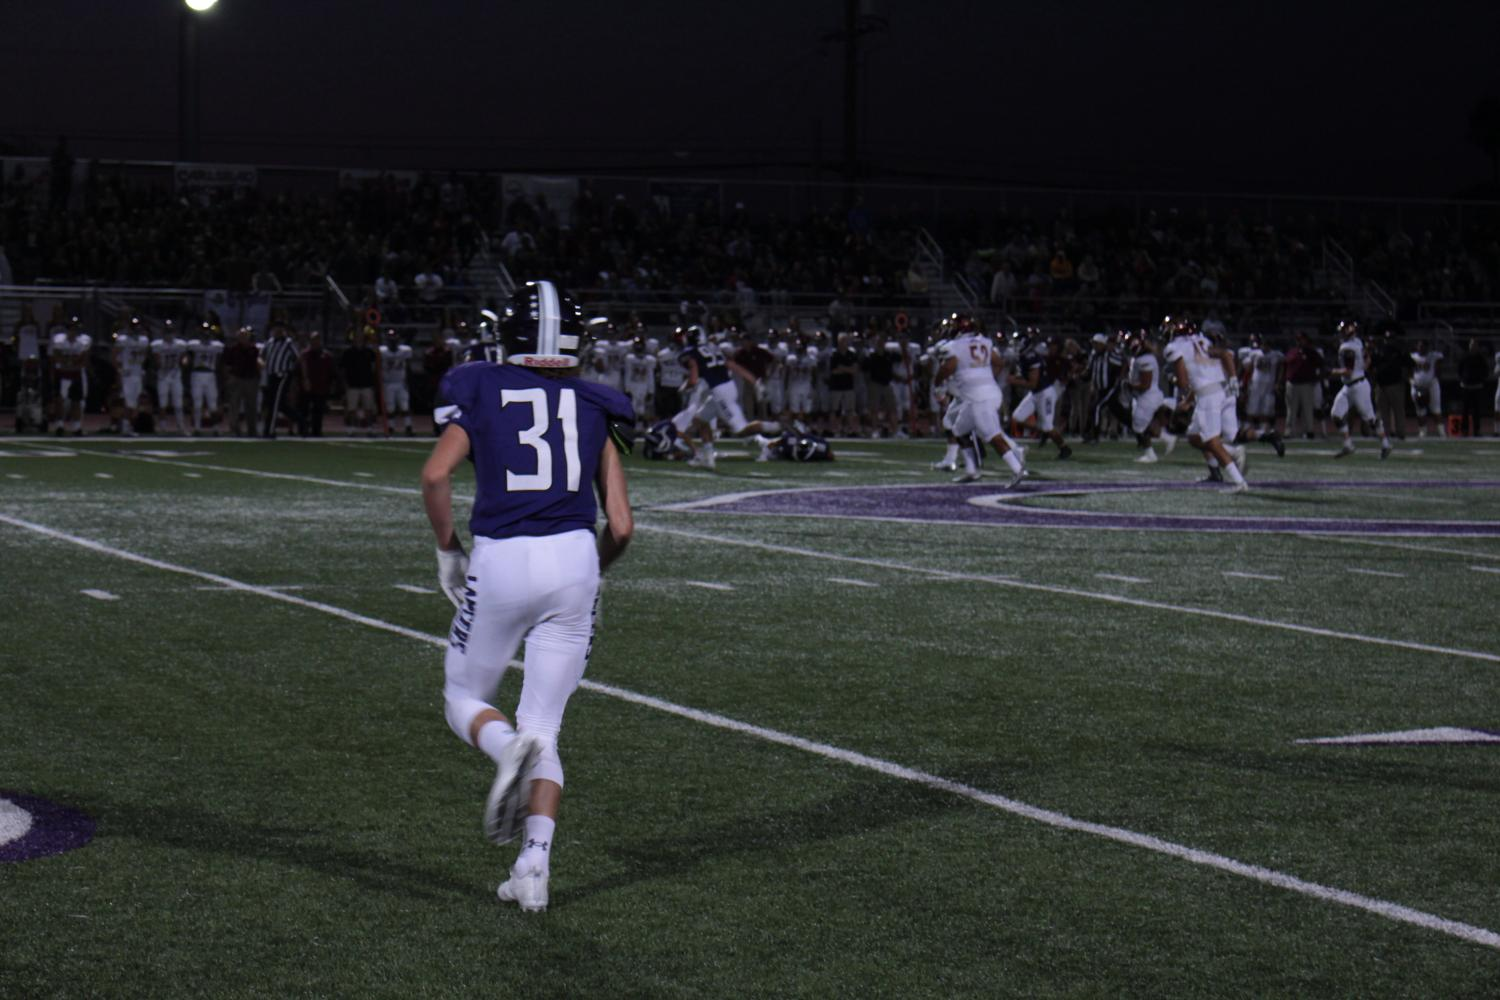 Sophomore, Cole Wright, runs towards the ball during the football game against Mission Hills.